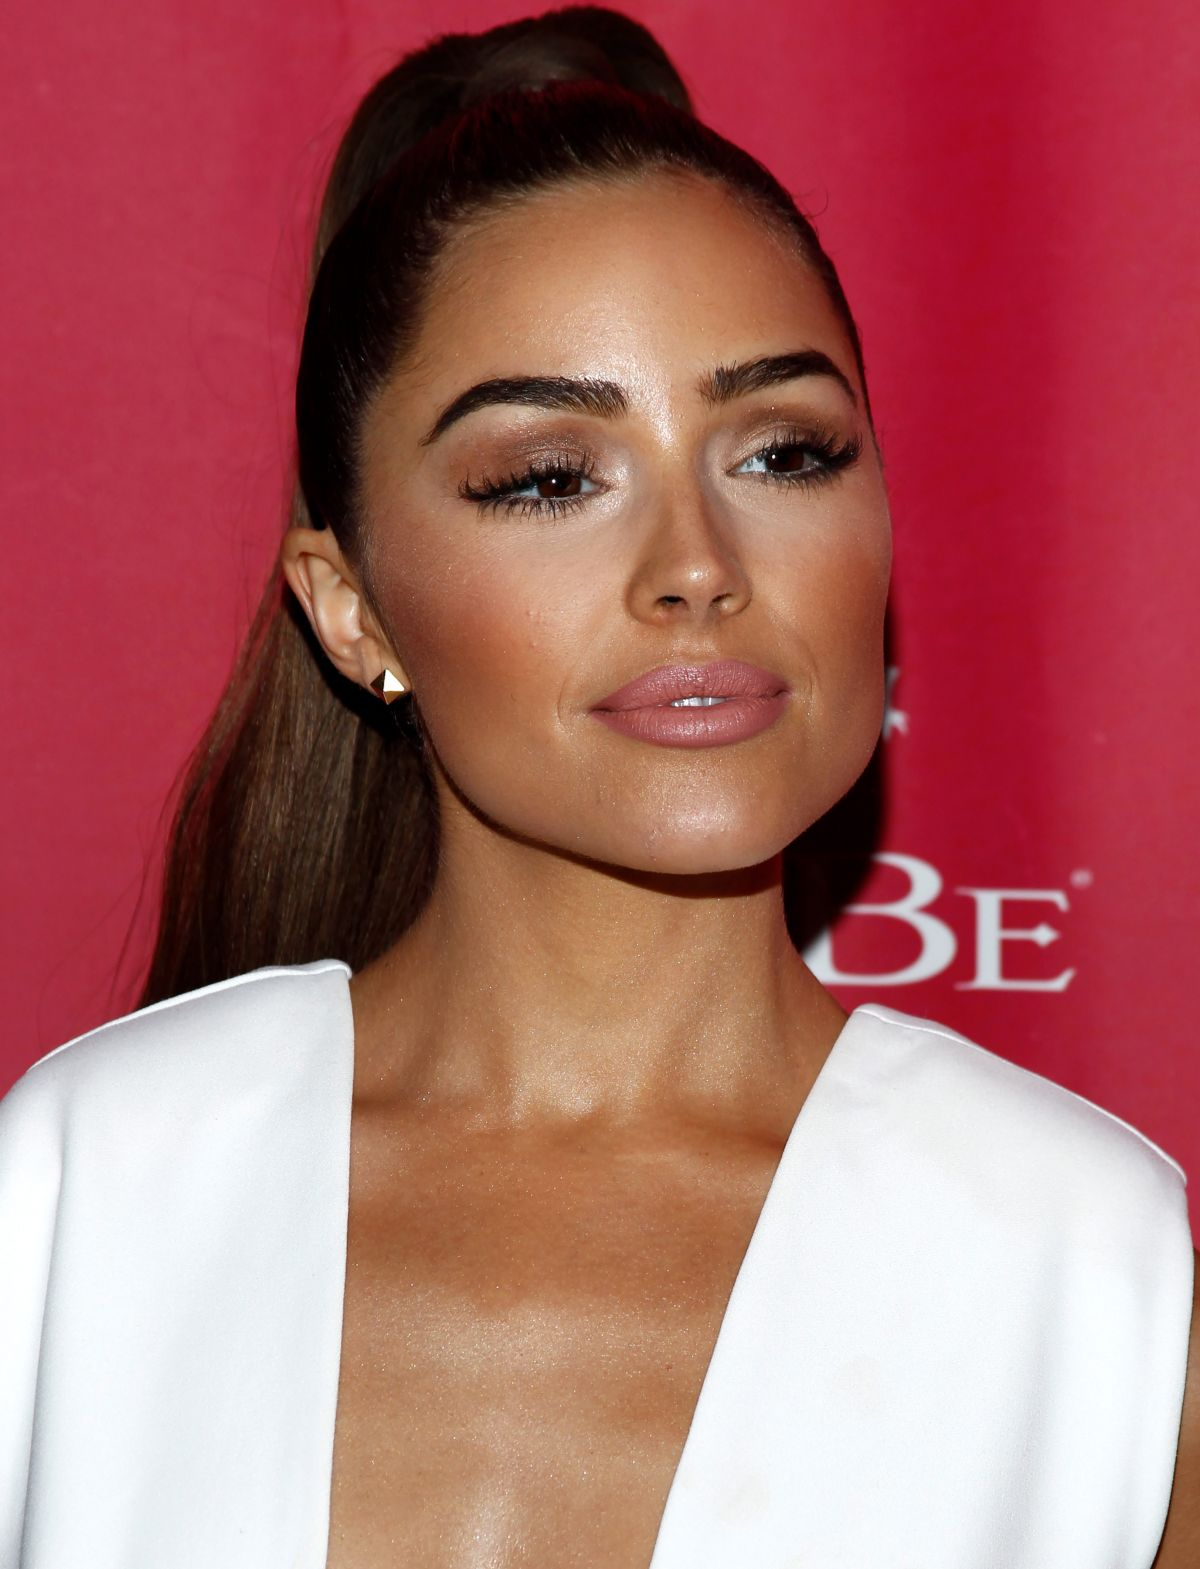 Olivia Culpo in White Dress at Foxtail Sls Sobe 21st Birthday Bash Pool Party in Las Vegas